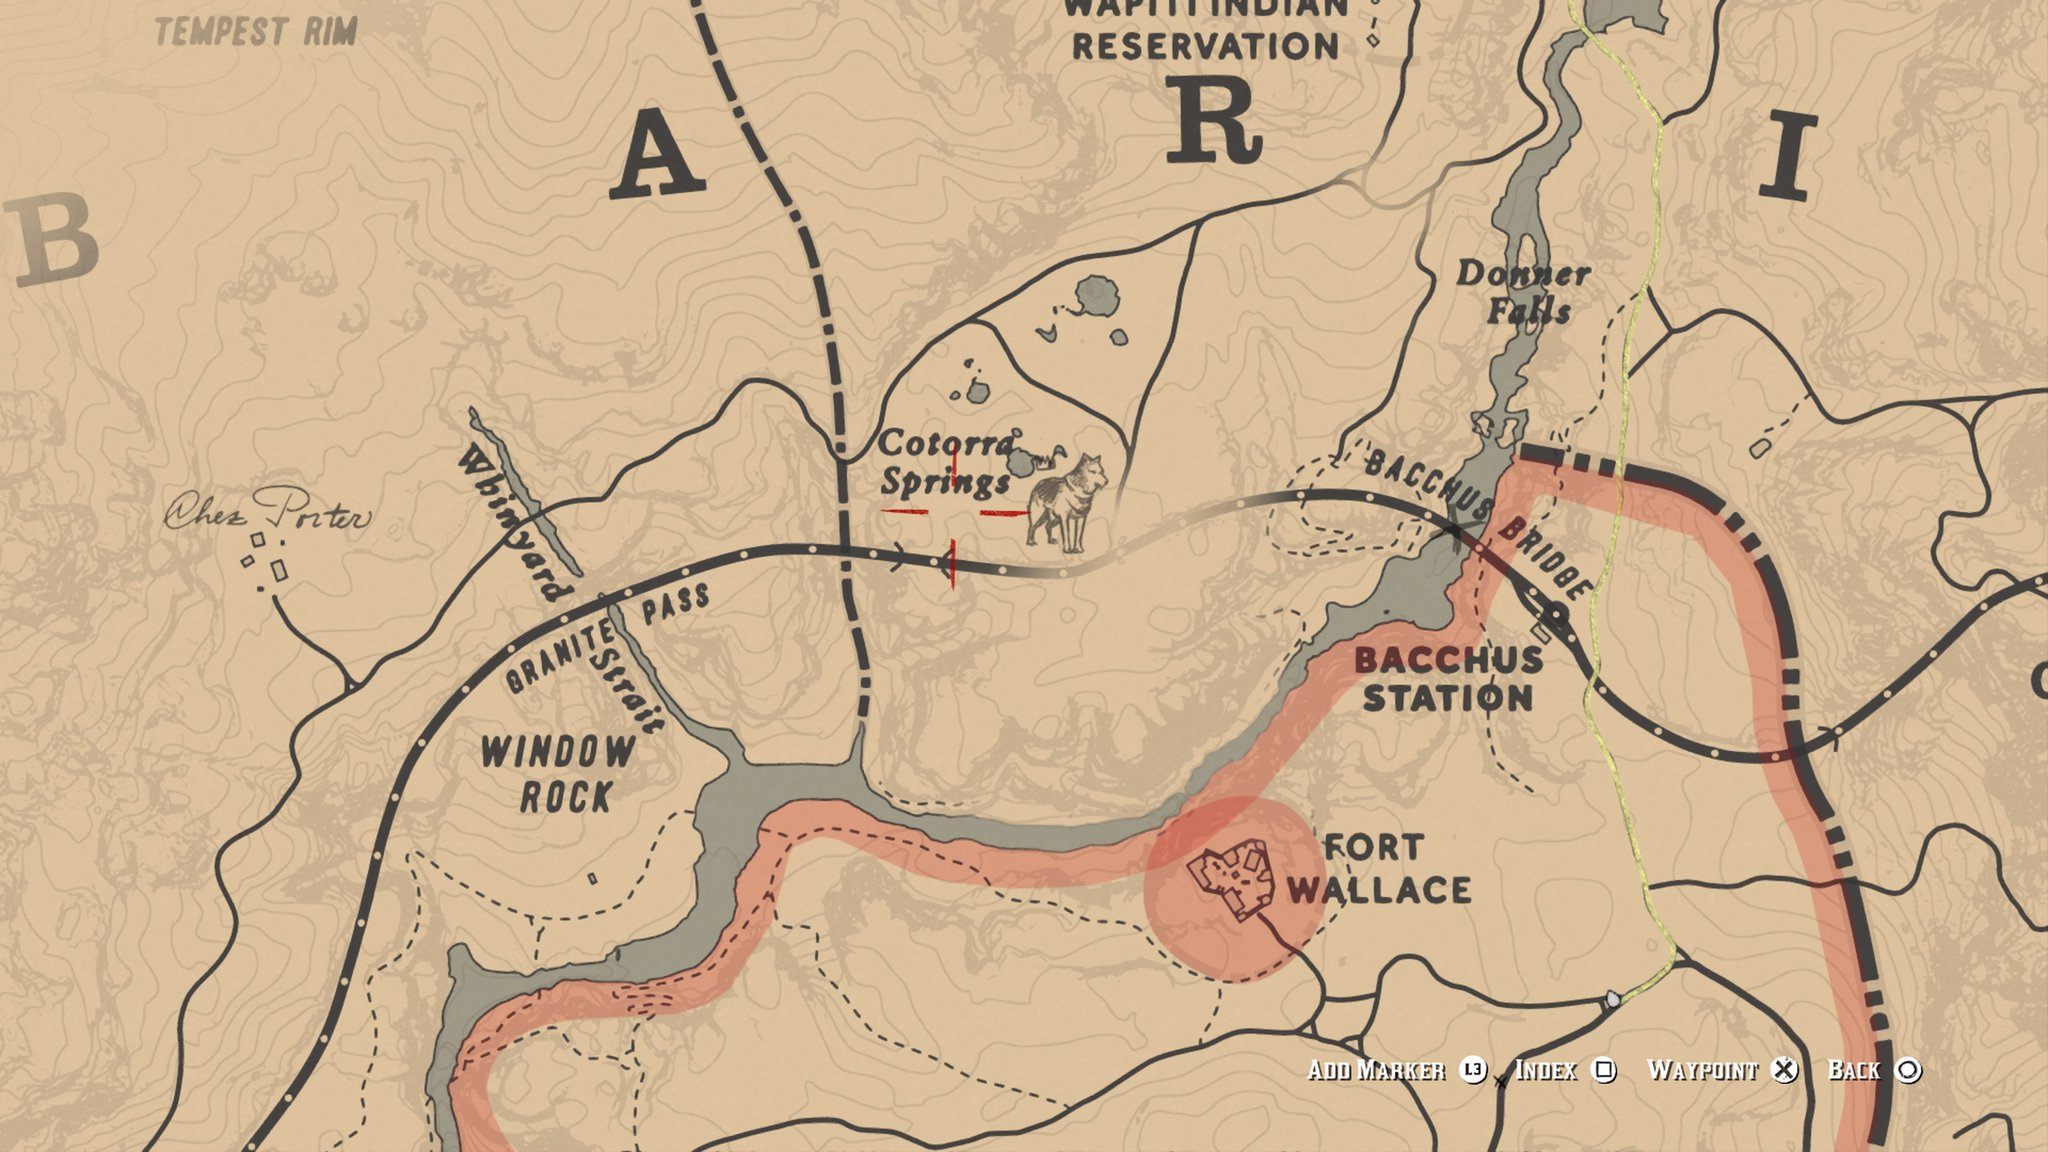 Red Dead Redemption 2 Jack Hall Treasure Locations - Where ... Gang Map on community map, south los angeles map, new york city map, office map, game map, hells angels map, college map, japan map, terrorism map, love map, real map, art map, home map, india map, sinaloa cartel map, first map, fun map, crime map, car map,